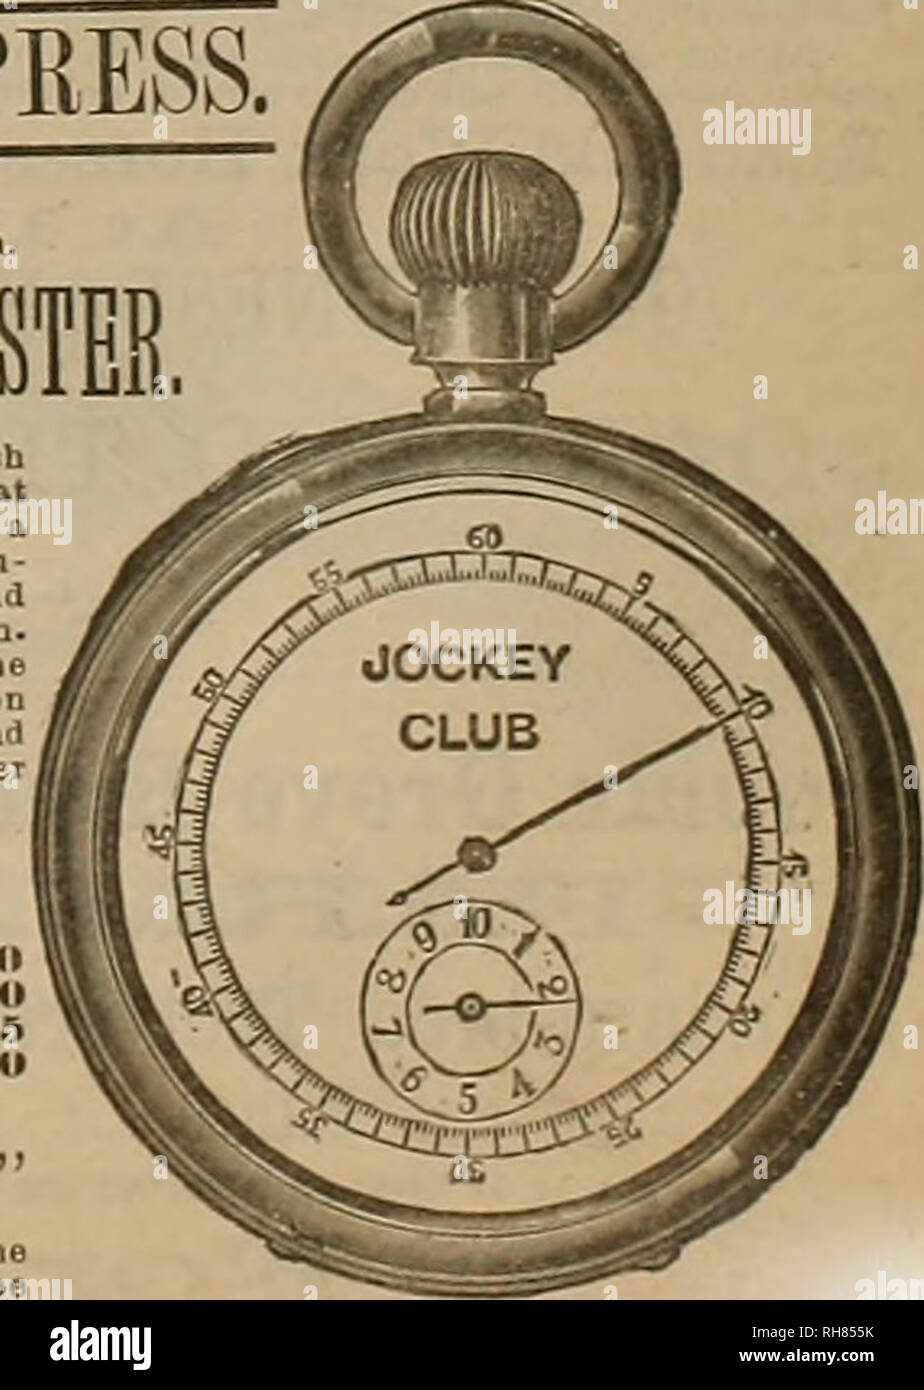 """. Breeder and sportsman. Horses. HILL""""HE ms THE EXPI!ESS' o money required until after full examination. HORSE TIME Al MINDTE REGISTER. Chronograph watch which combines an accurate slop watch for sporting, timing horses, hoat races, doctors, where each beat of the pulse is timed, and where accurate time fquarter of a second) Is necessary. With a perfect time-keeper for regu- lar use, same as any other watch, the mechanism to start ana stop Is of the most simple and durable construction, and Is in. dependent of the other parts of tbe movement. None but the very best material obtainable Is - Stock Image"""